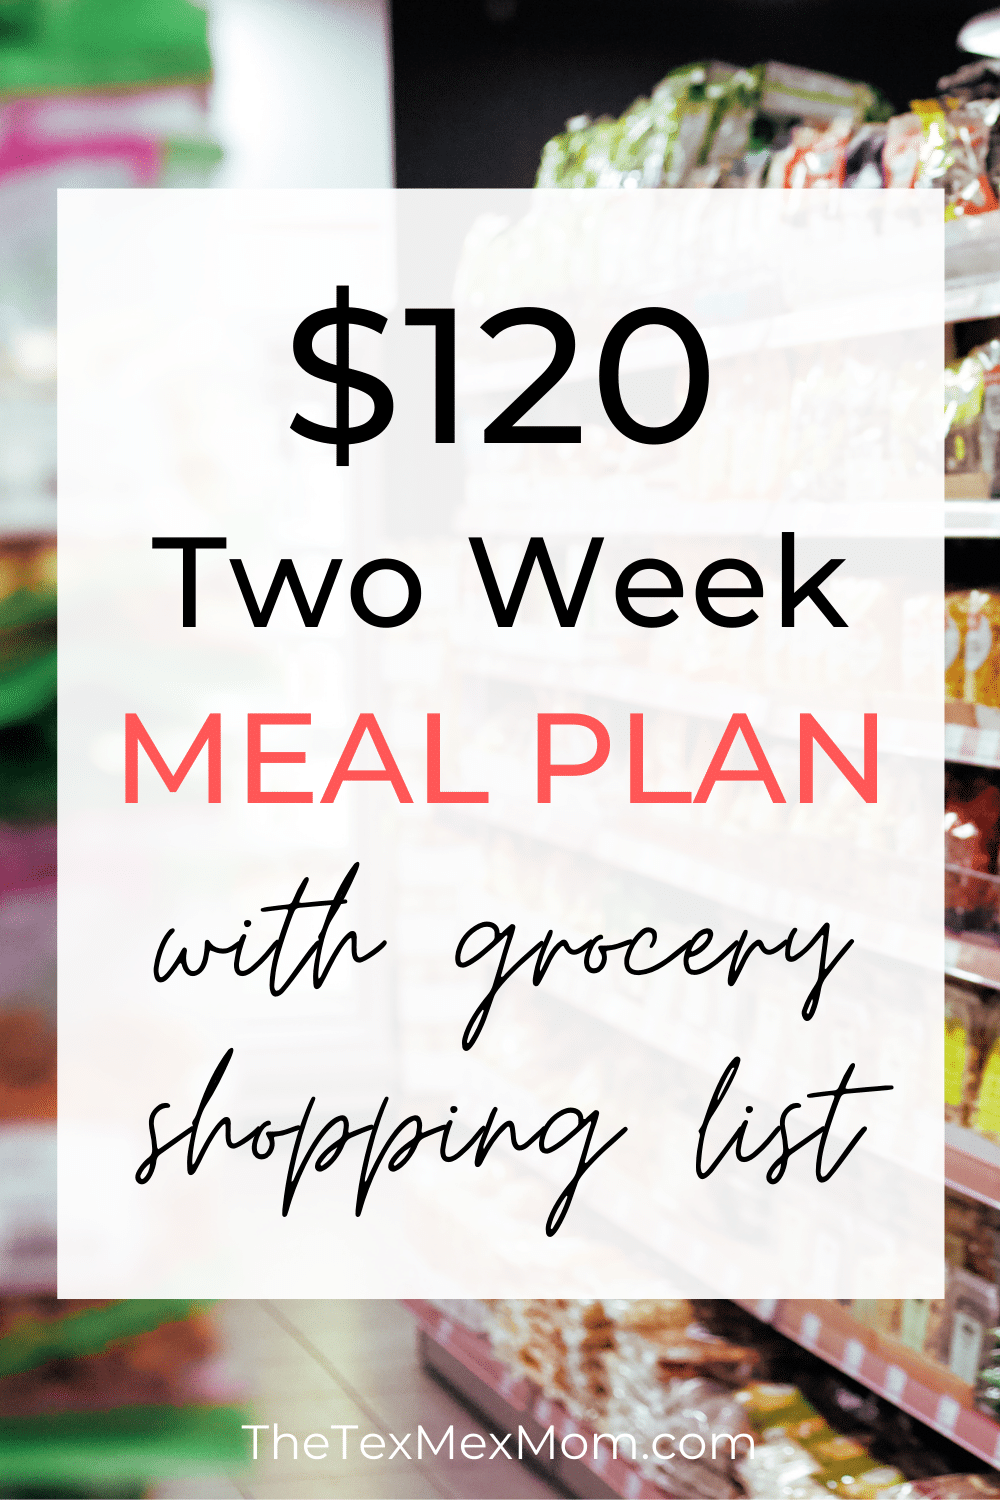 $120 two week meal plan with grocery list